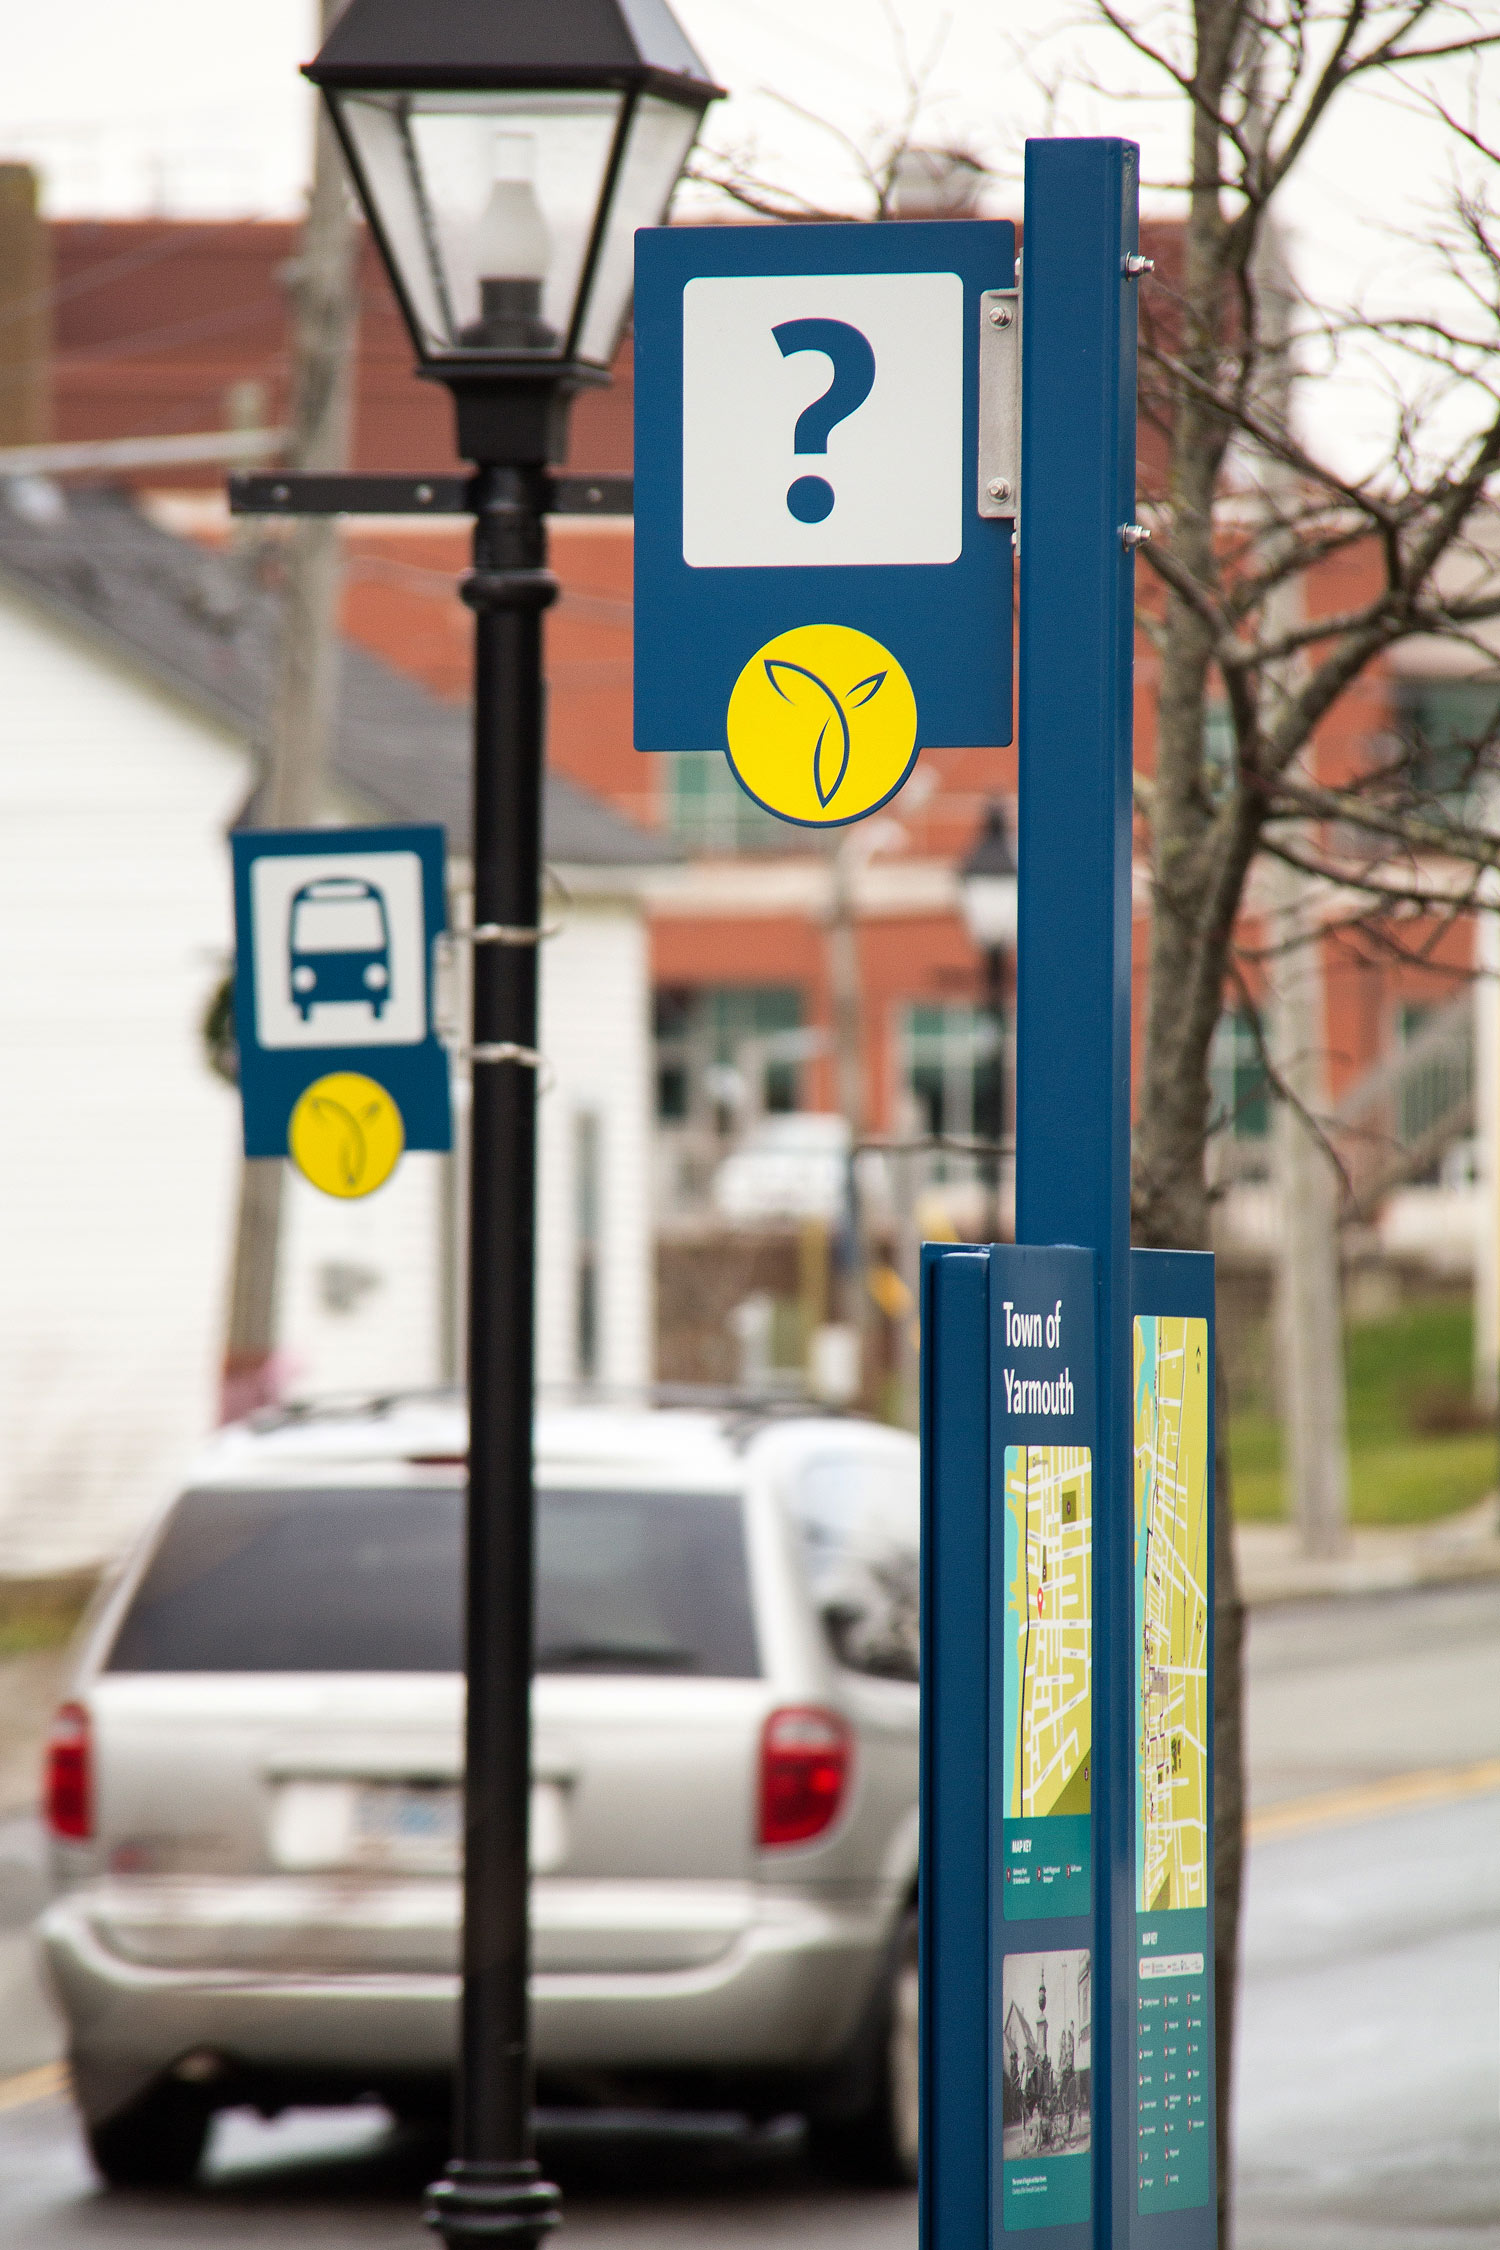 AN INTEGRATED SYSTEM From Busi signs to information kiosks, all signs are unified by colour, form, and use of logos and symbols.